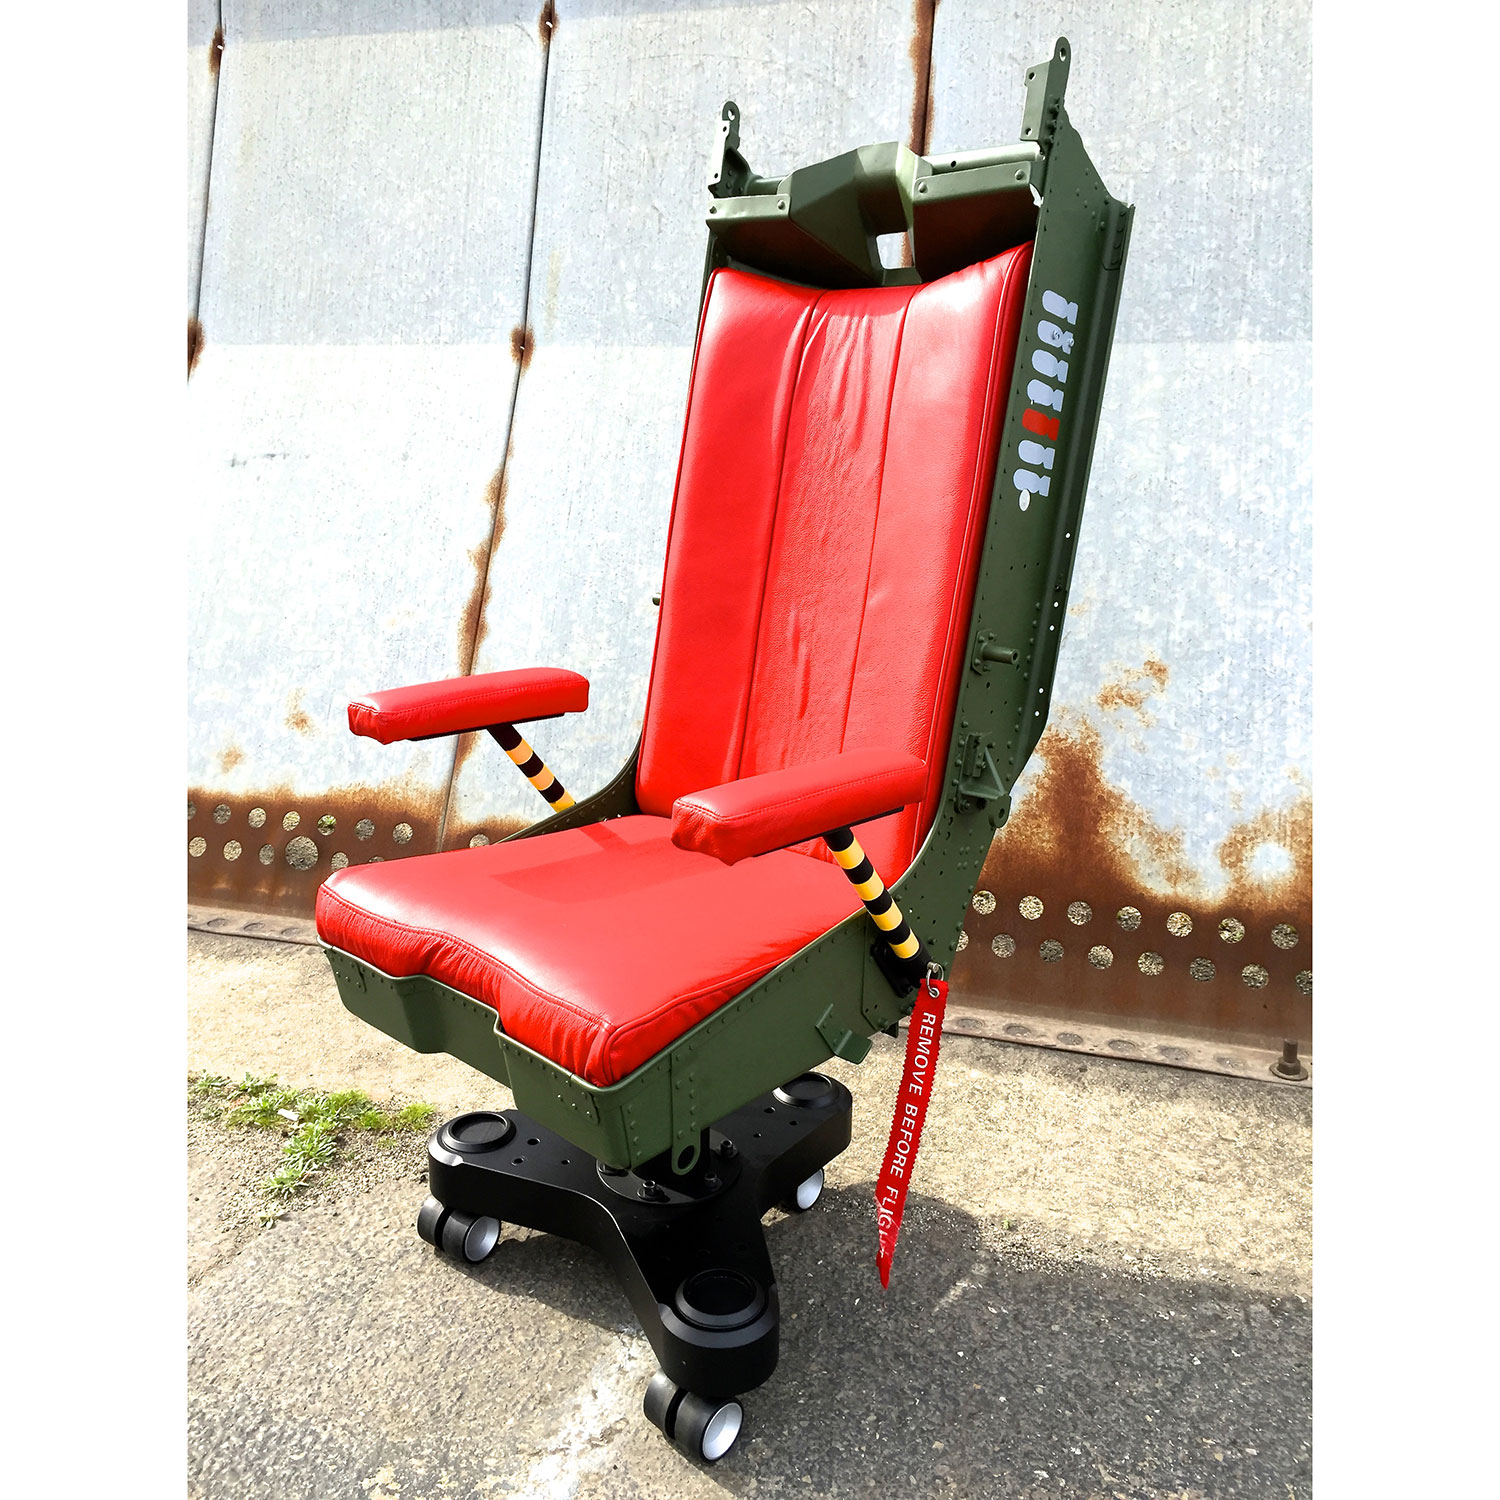 B 52 Ejection Seat Office Chair Air to Ground Design Touch Of